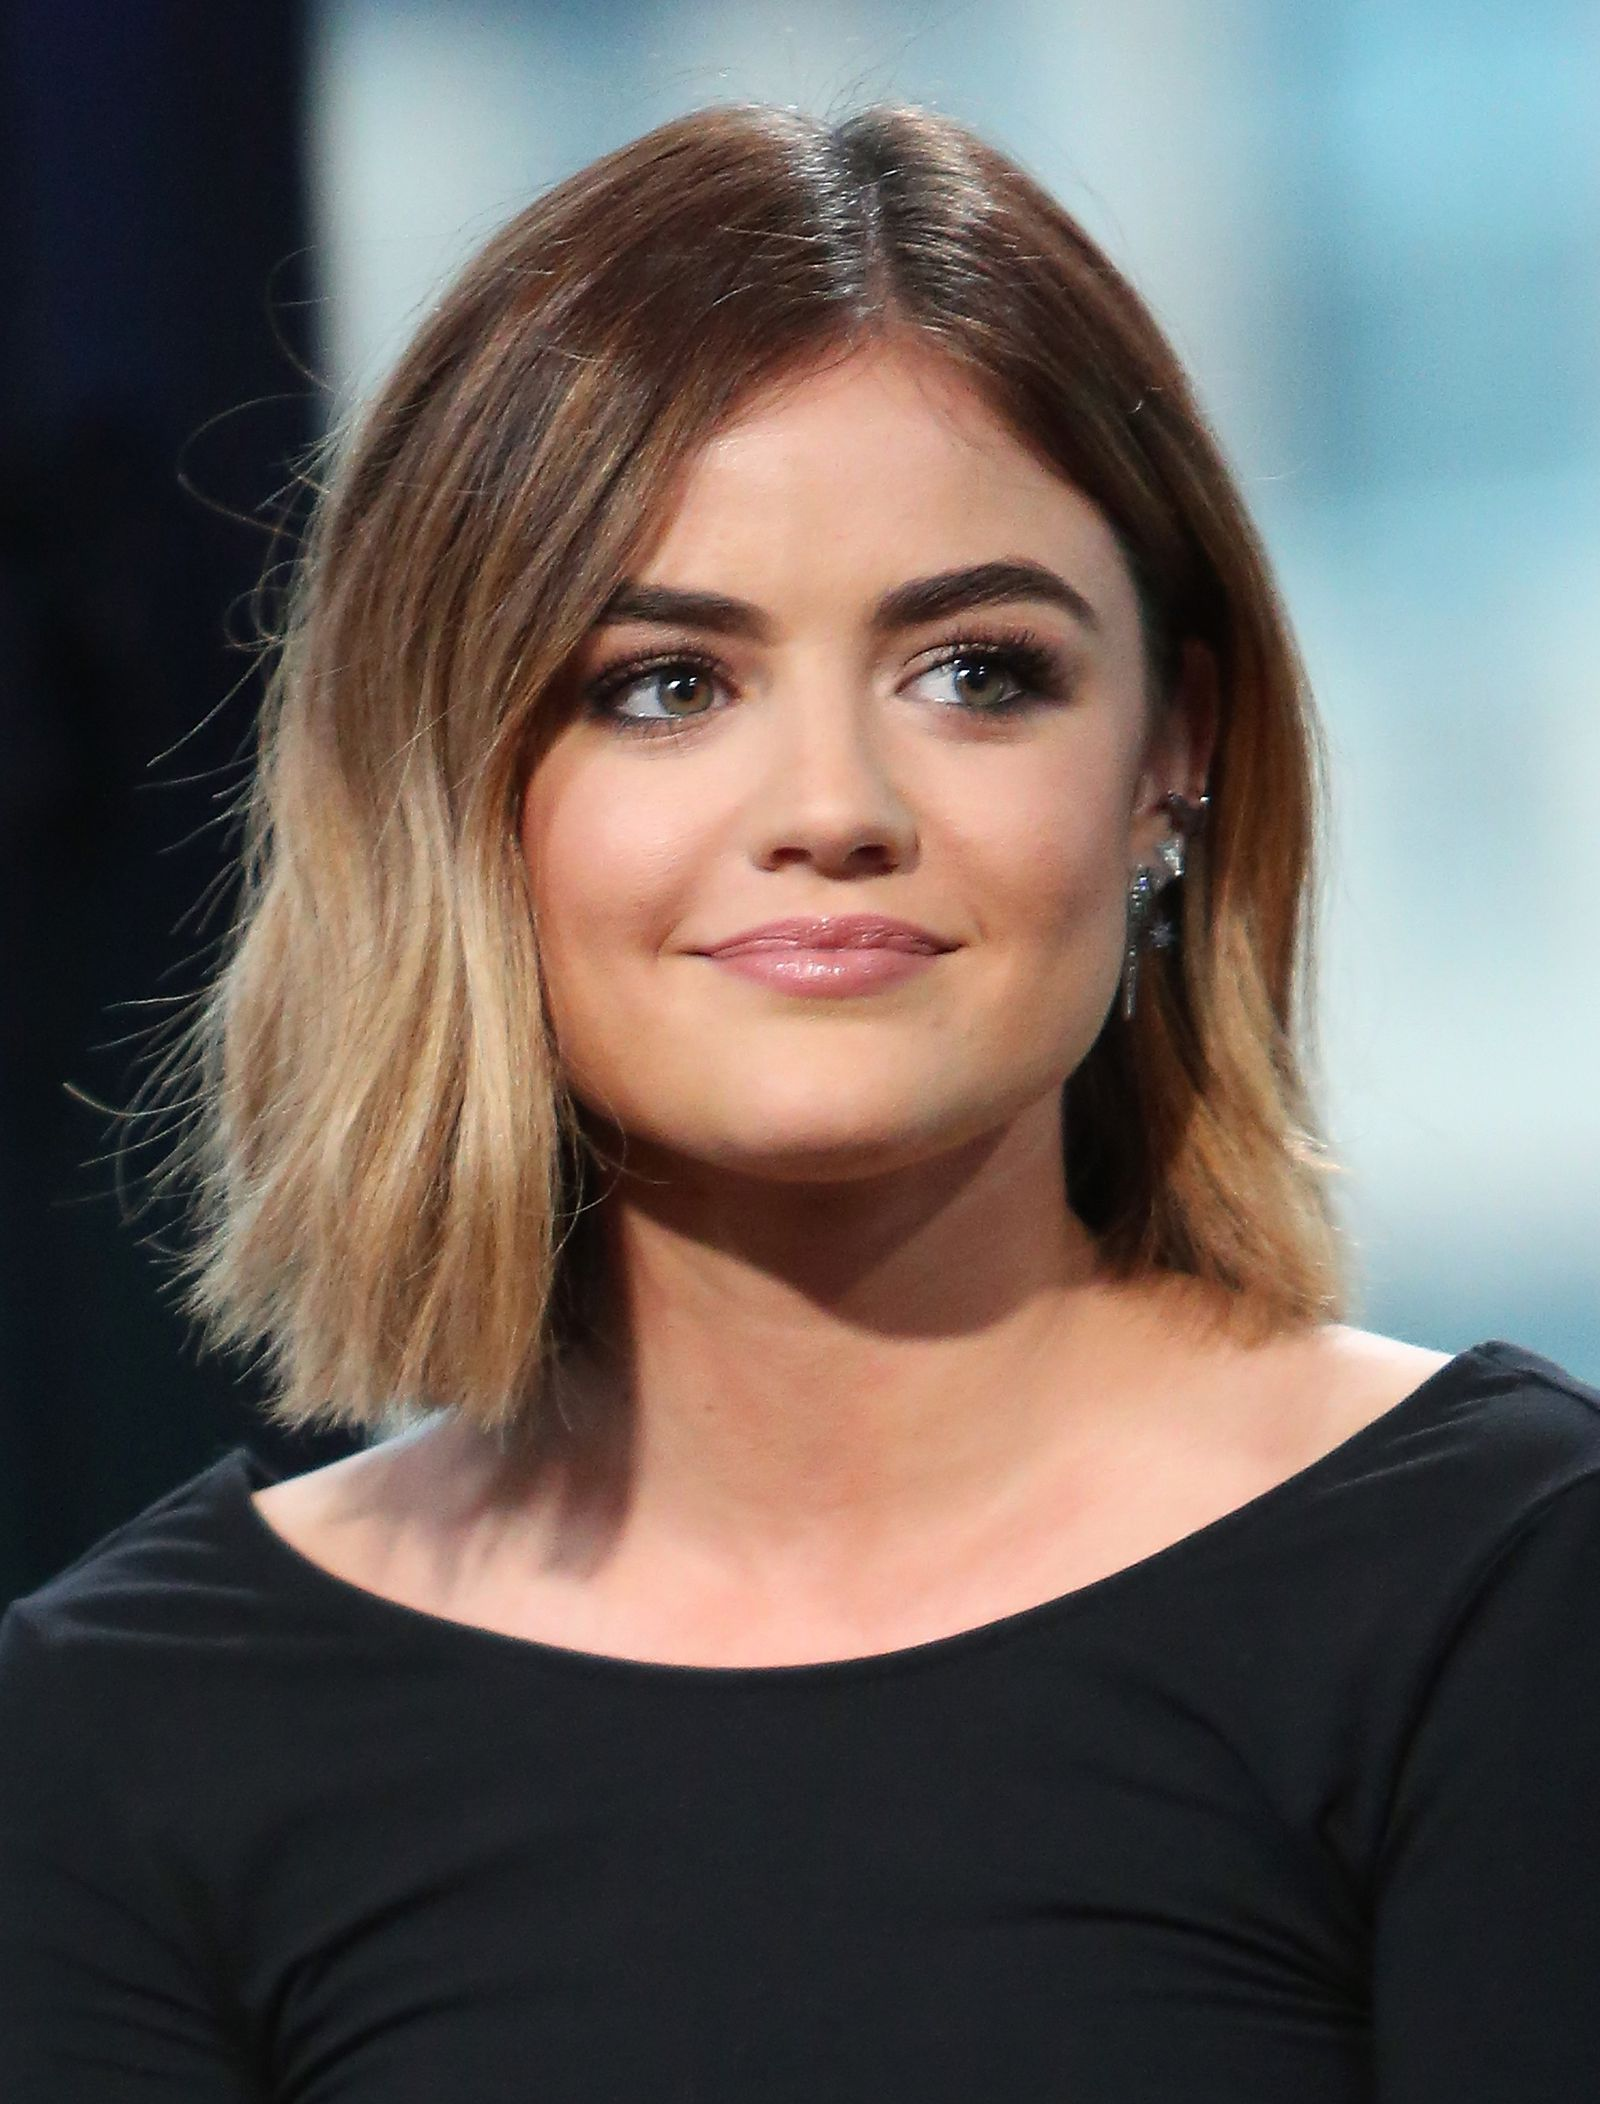 Lucy Hale S Amazing Hair Transformation Lucy Hale Short Hair Short Hair Styles Lucy Hale Hair